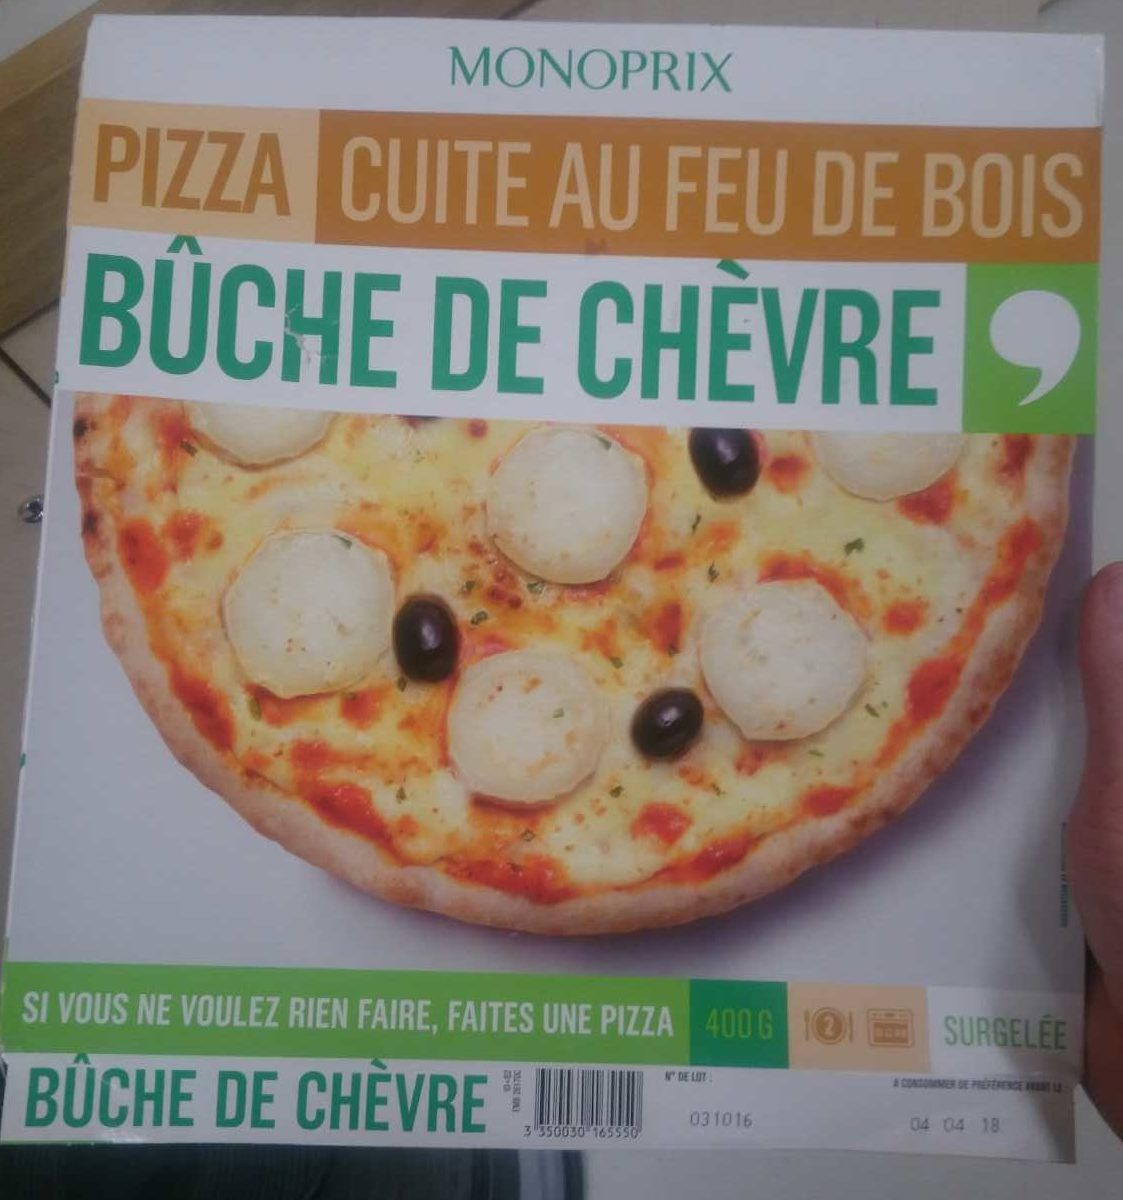 pizza cuite au feu de bois b che de ch vre monoprix 400 g. Black Bedroom Furniture Sets. Home Design Ideas